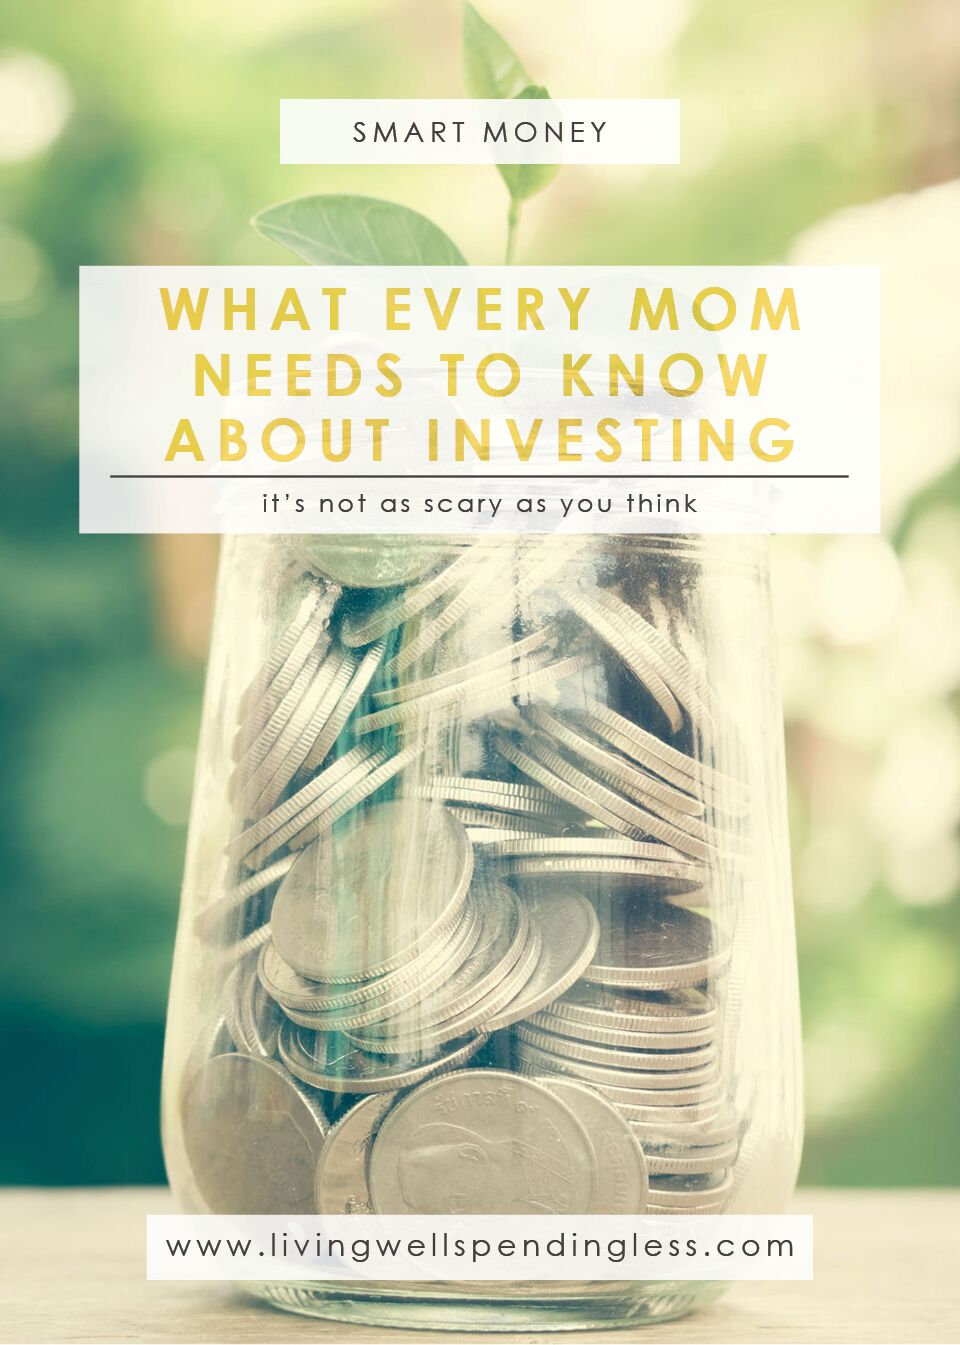 What Every Mom Needs to Know About Investing   Money Investing Tips for Moms   Financial Tips for Moms